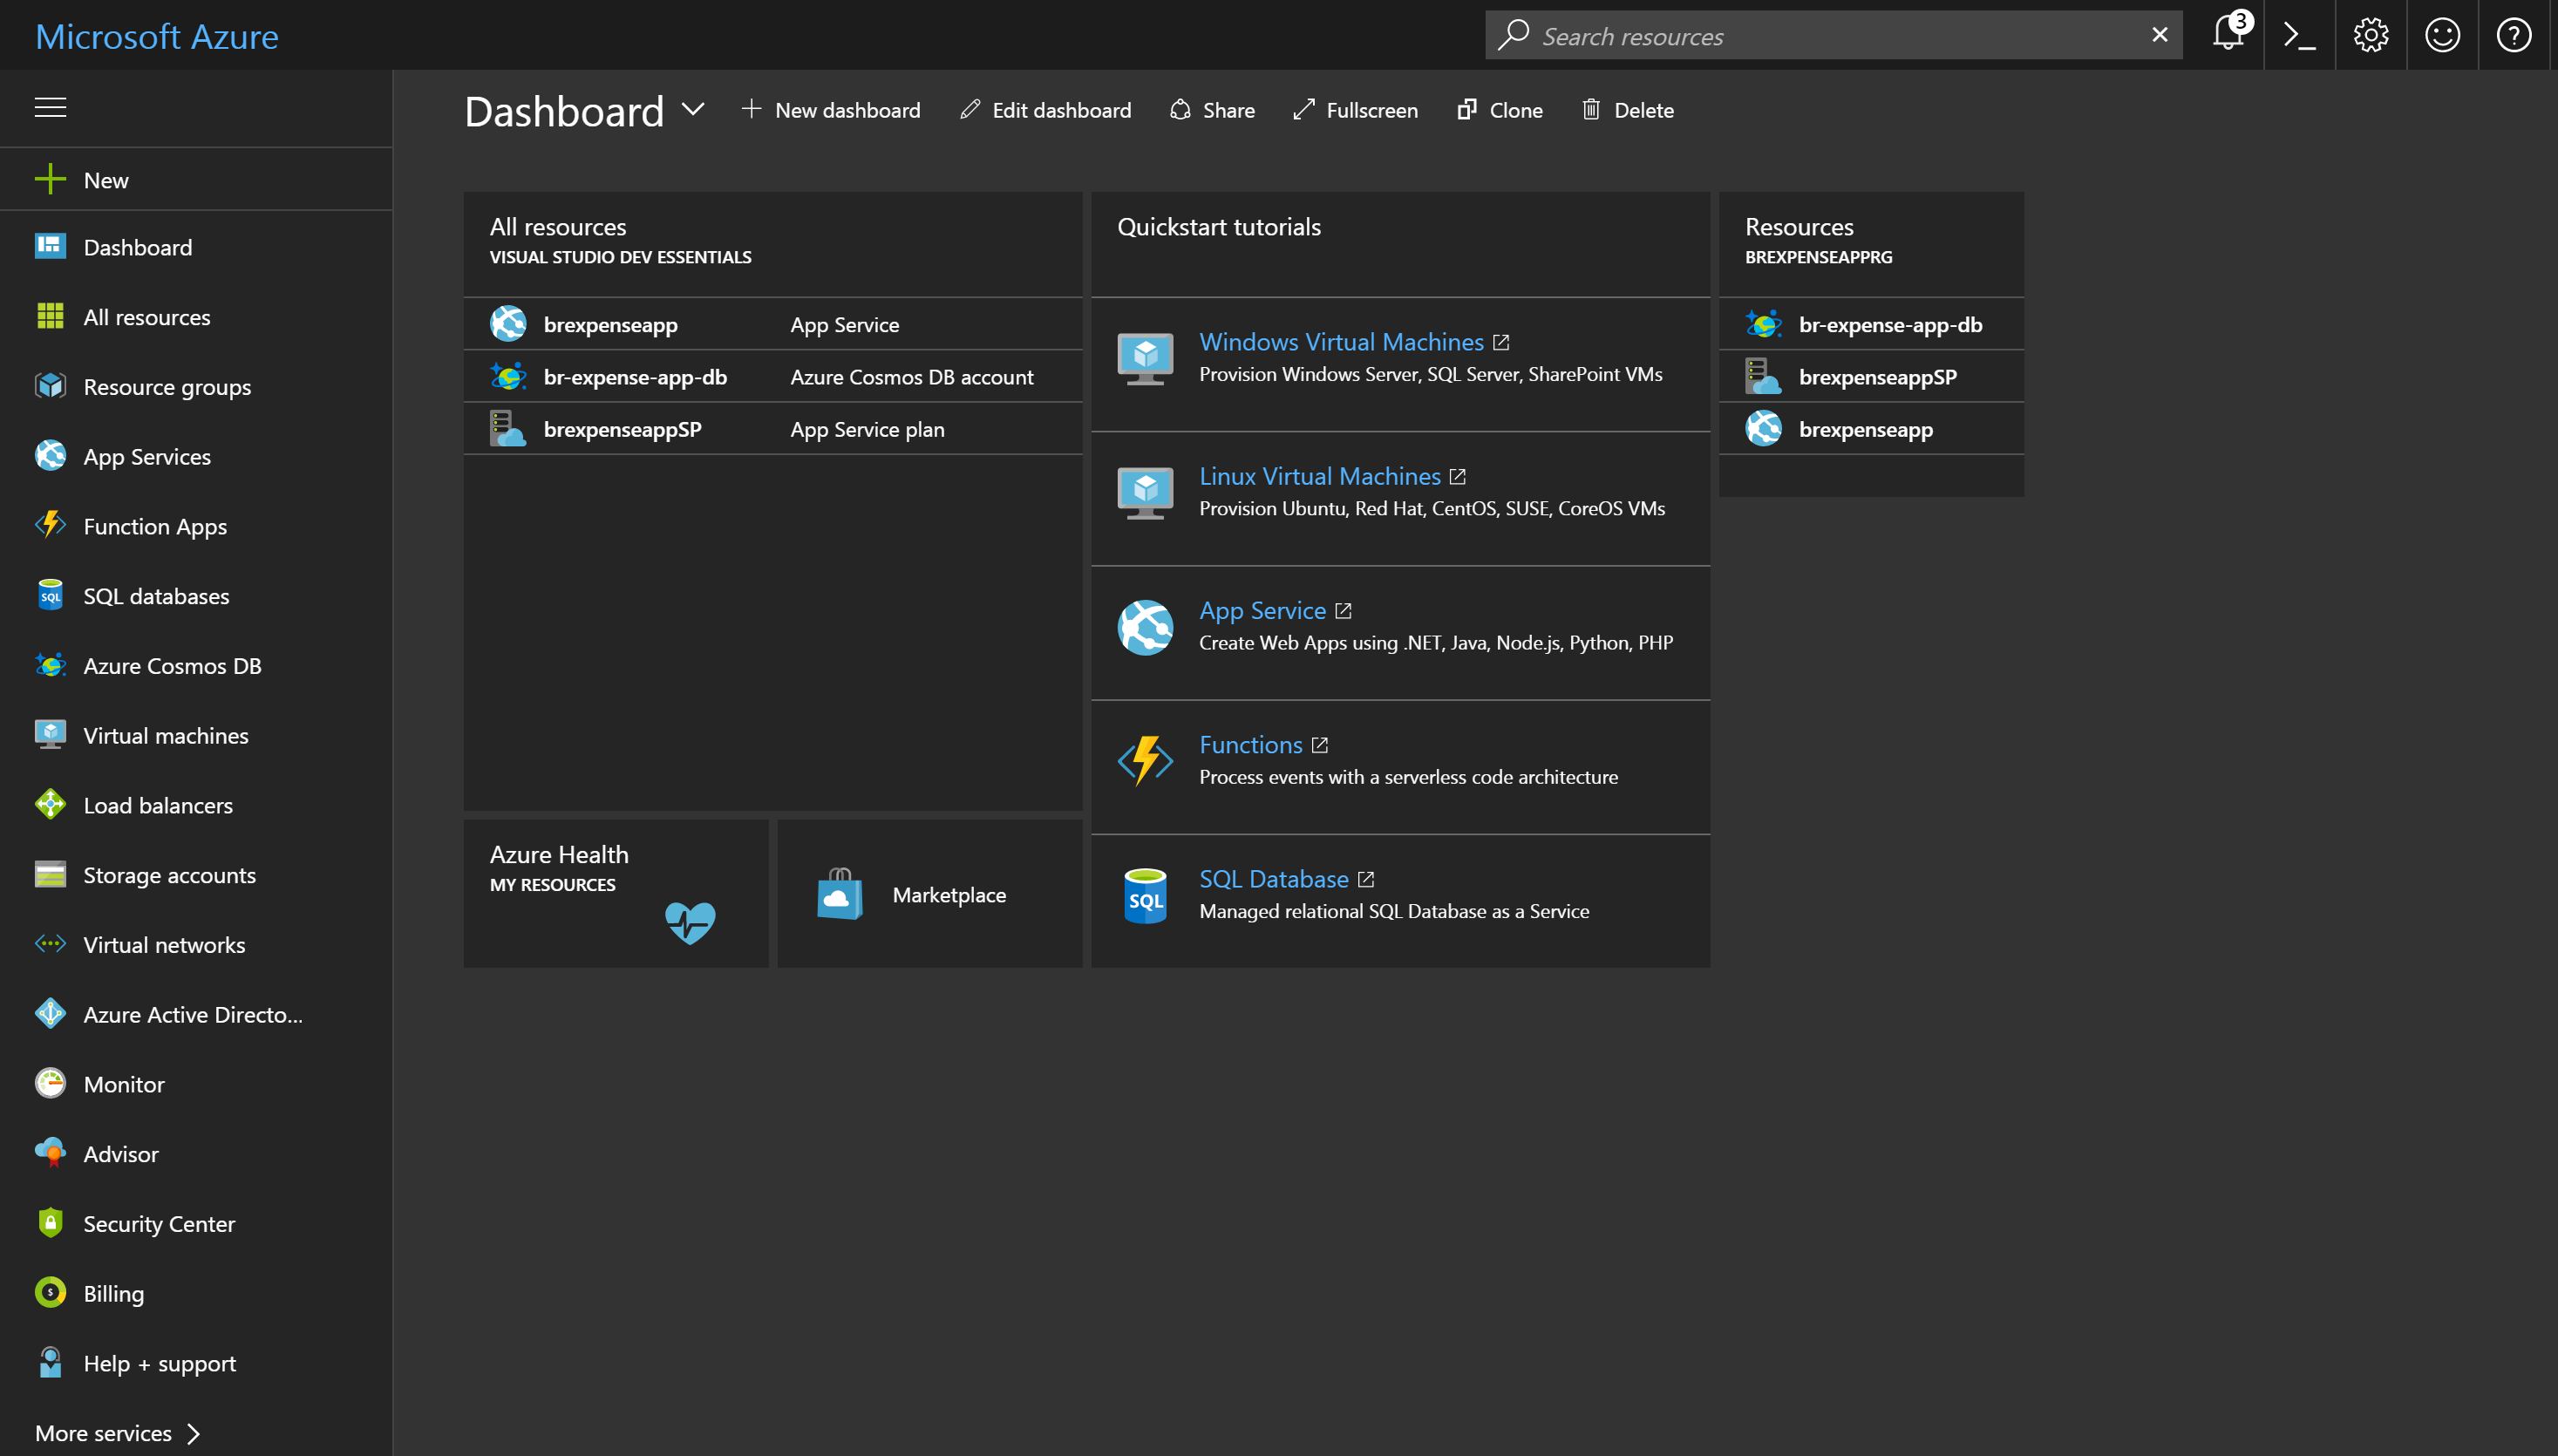 Step-by-step guide: Azure portal resource groups and resources